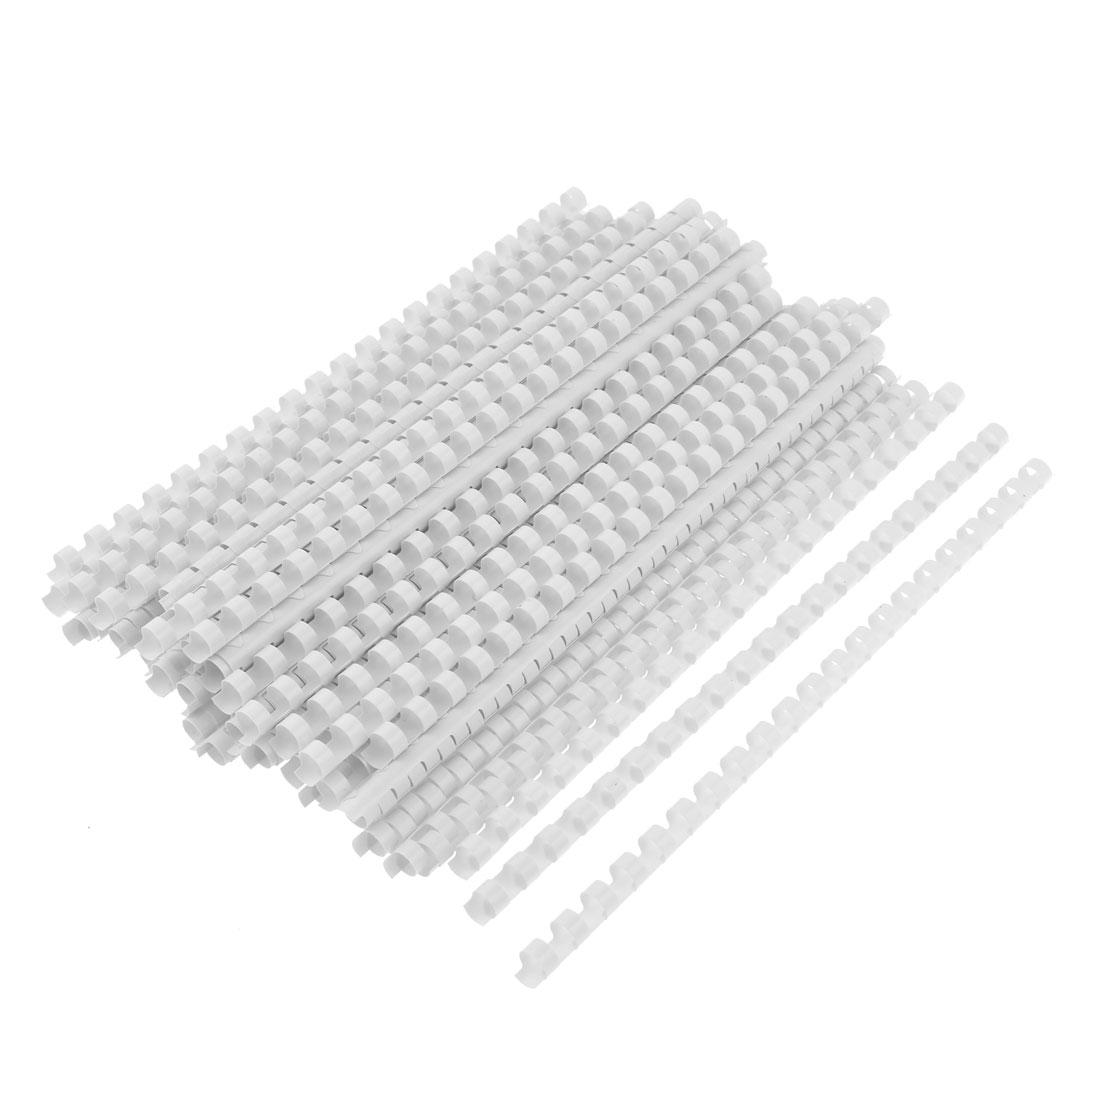 "Office Stationery Plastic Binding Combs 11.6"" Length White Ring Dia 10mm 100pcs"